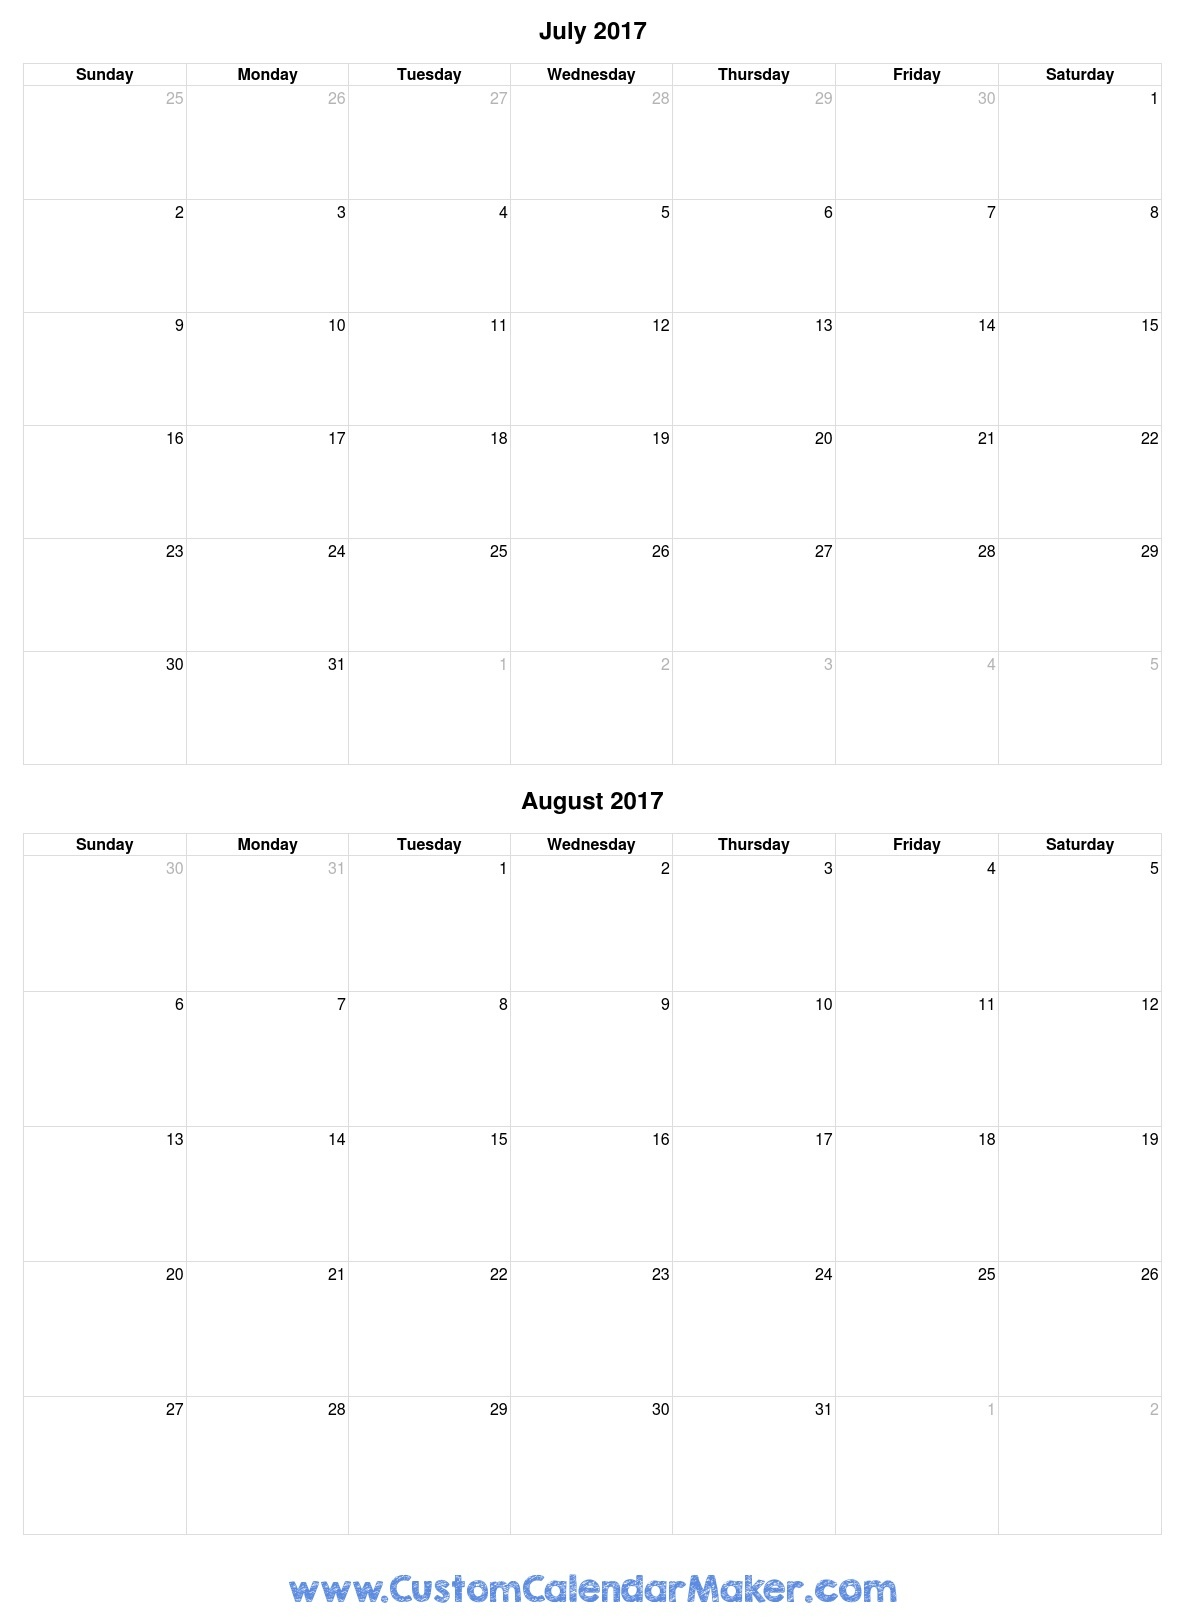 July And August 2017 Free Printable Calendar Template - Free Printable August 2017